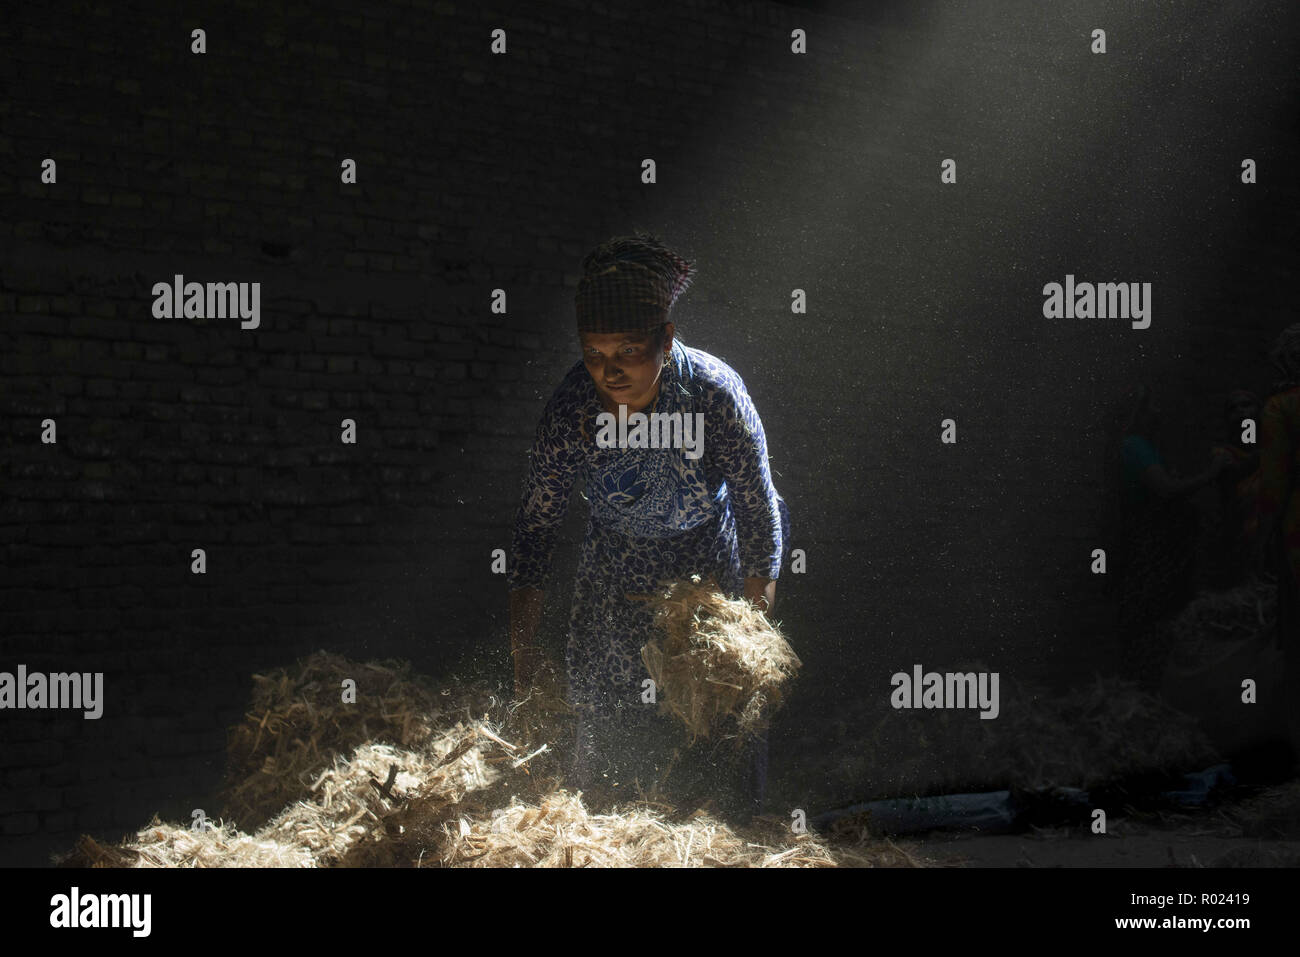 Narayanganj, Bangladesh. 1st Nov, 2018. Sun rays enter through the rooftop while Jute mill worker sorting out small pieces of jutes.Bangladesh used to be known for it's Jute. In recent years Bangladesh and many other country considering jute as the new possibilities to replace many daily goods and make bags out of jute to replace plastics. Credit: Ziaul Haque Oisharjh/SOPA Images/ZUMA Wire/Alamy Live News Stock Photo